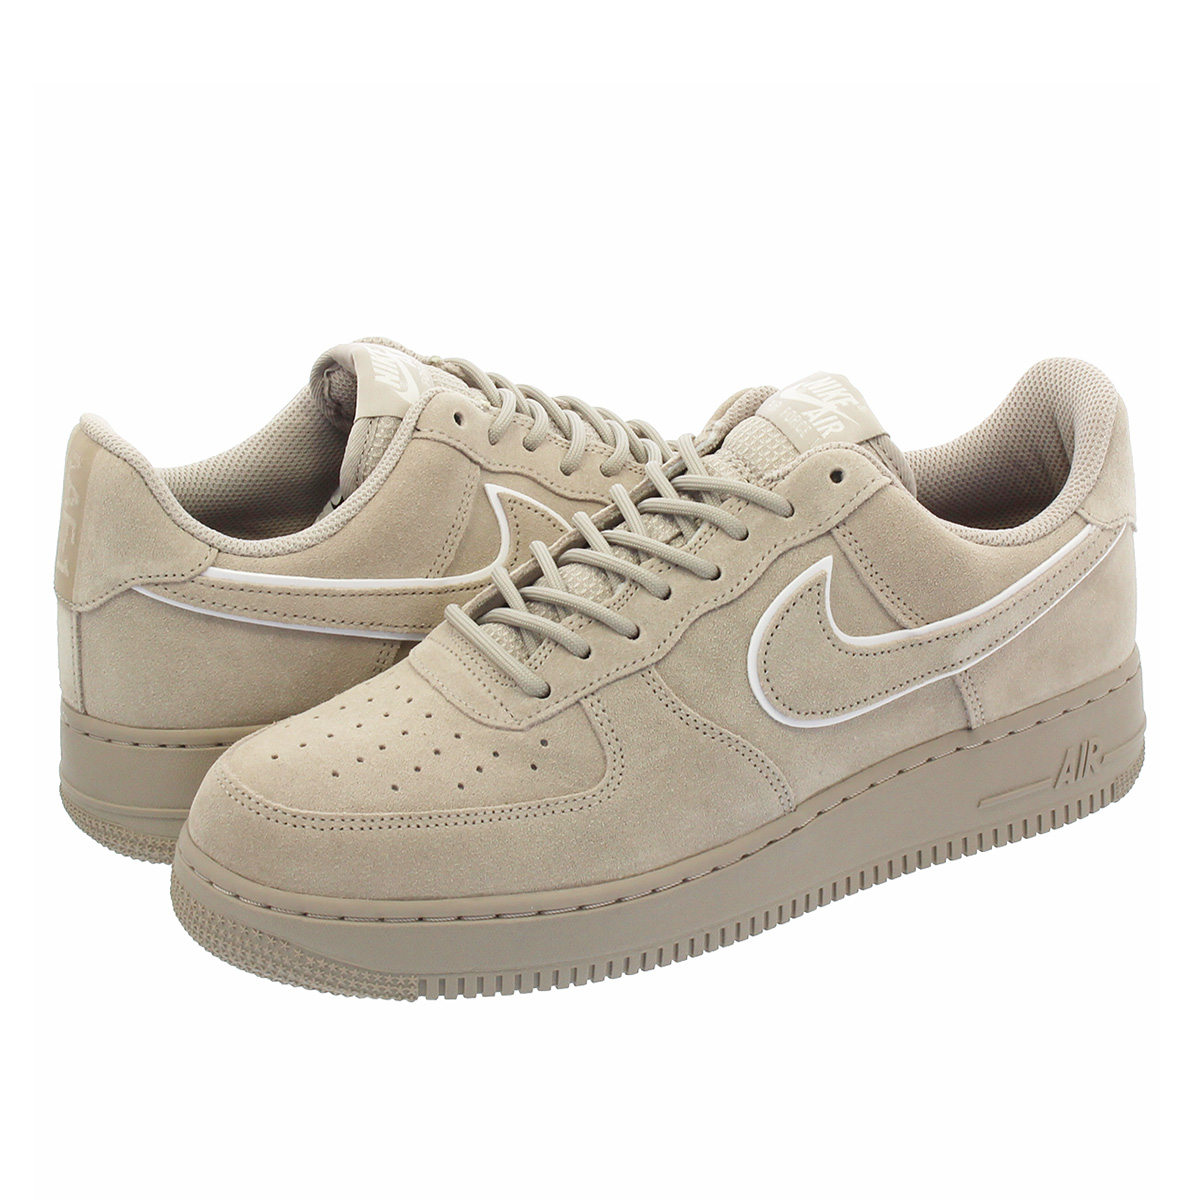 nice cheap online store arrives NIKE AIR FORCE 1 '07 LV8 SUEDE Nike air force 1 '07 LV8 suede MOON  PARTICLE/SEPIA STONE